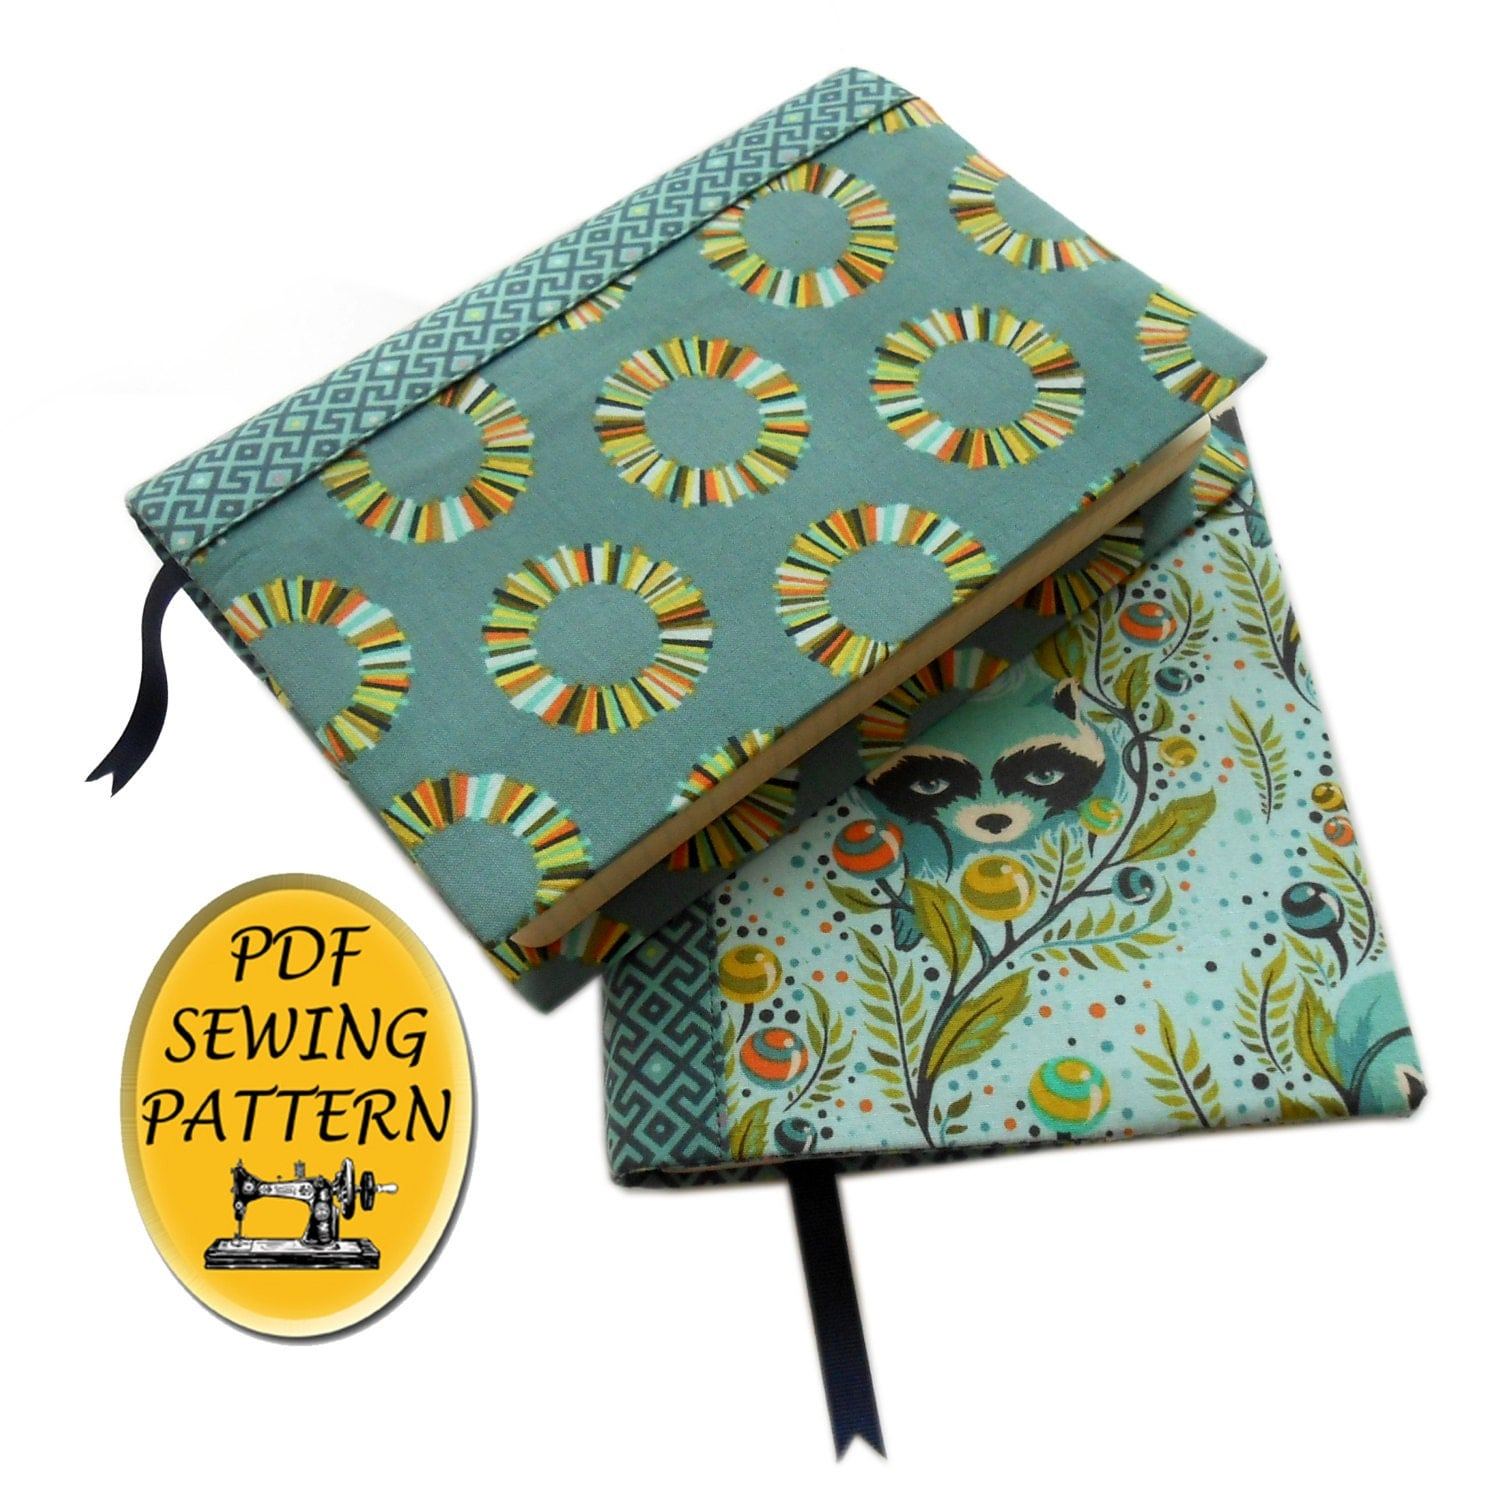 Sewing A Book Cover Pattern ~ Bible cover pattern a notebook holder sewing